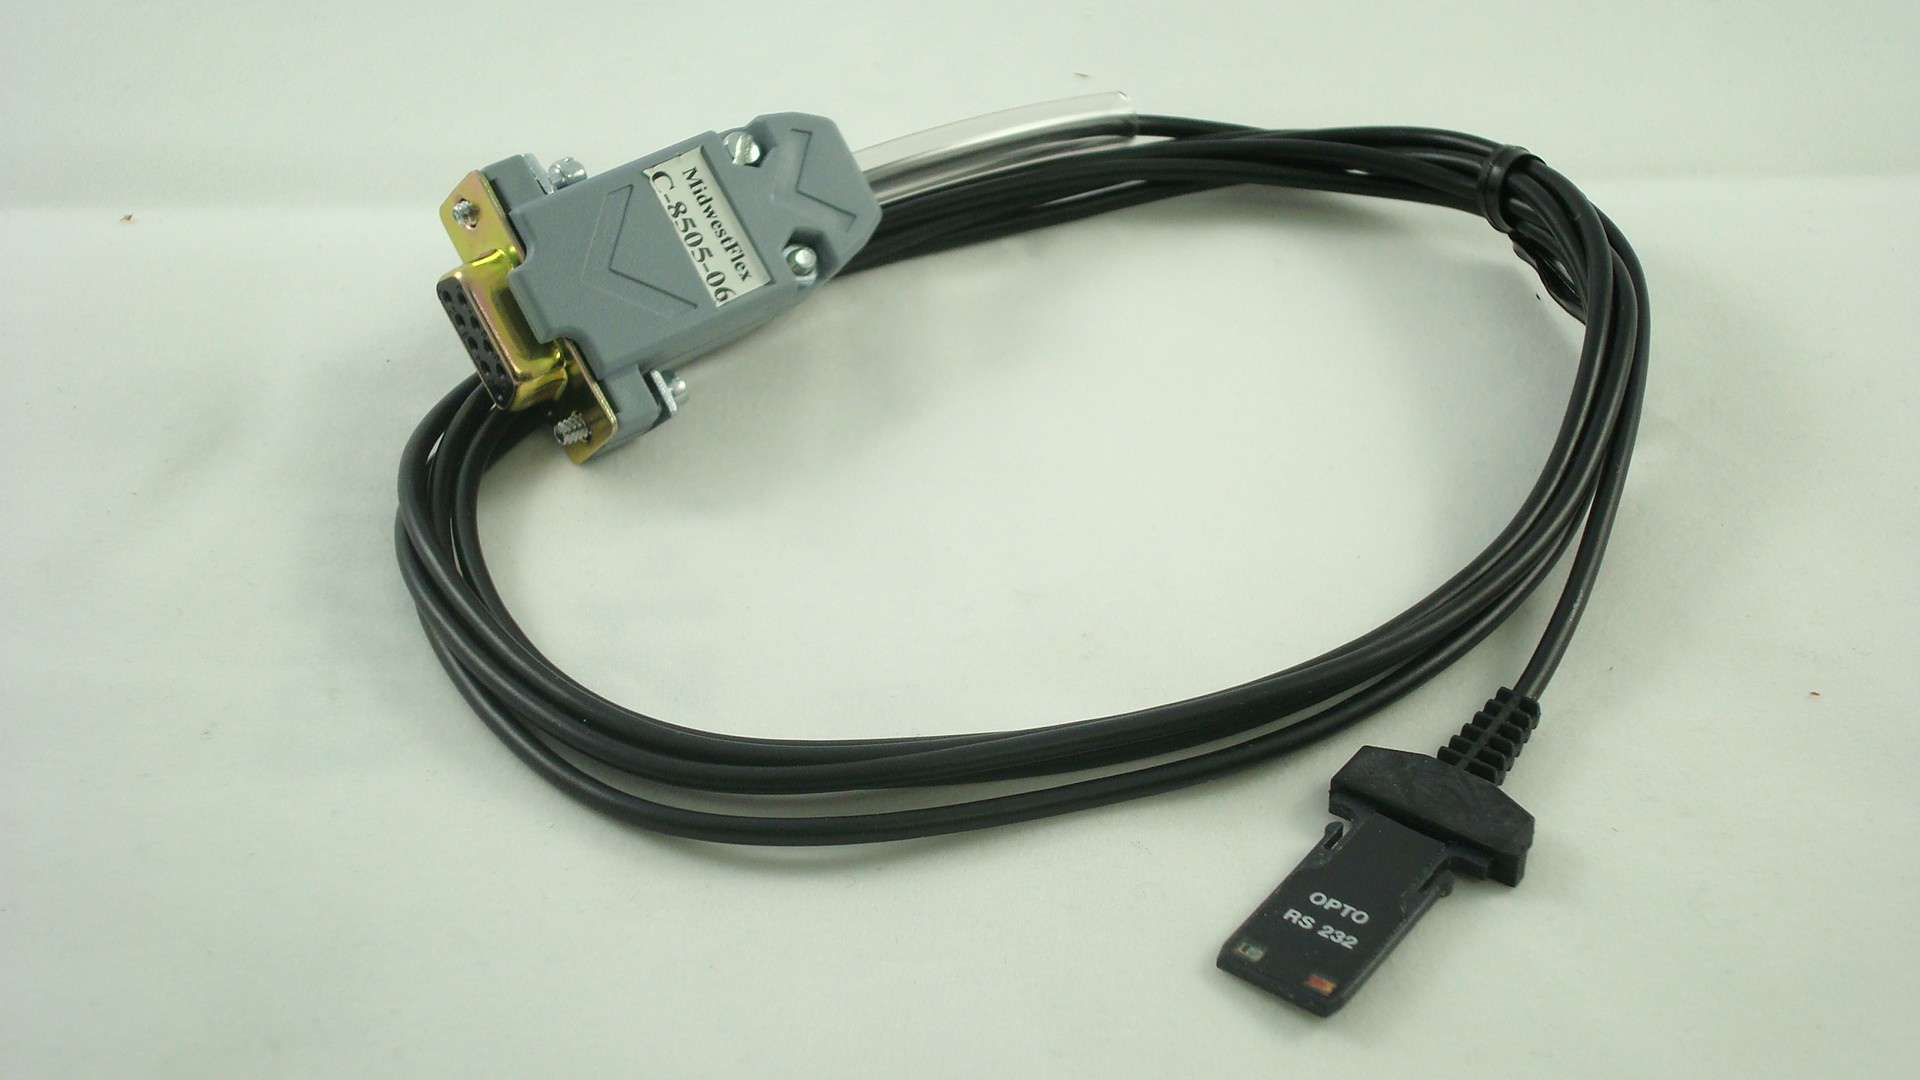 C-8505-06 Opto/RS232 Cable with Footswitch Jack to DB9 Female connector (6 ft)